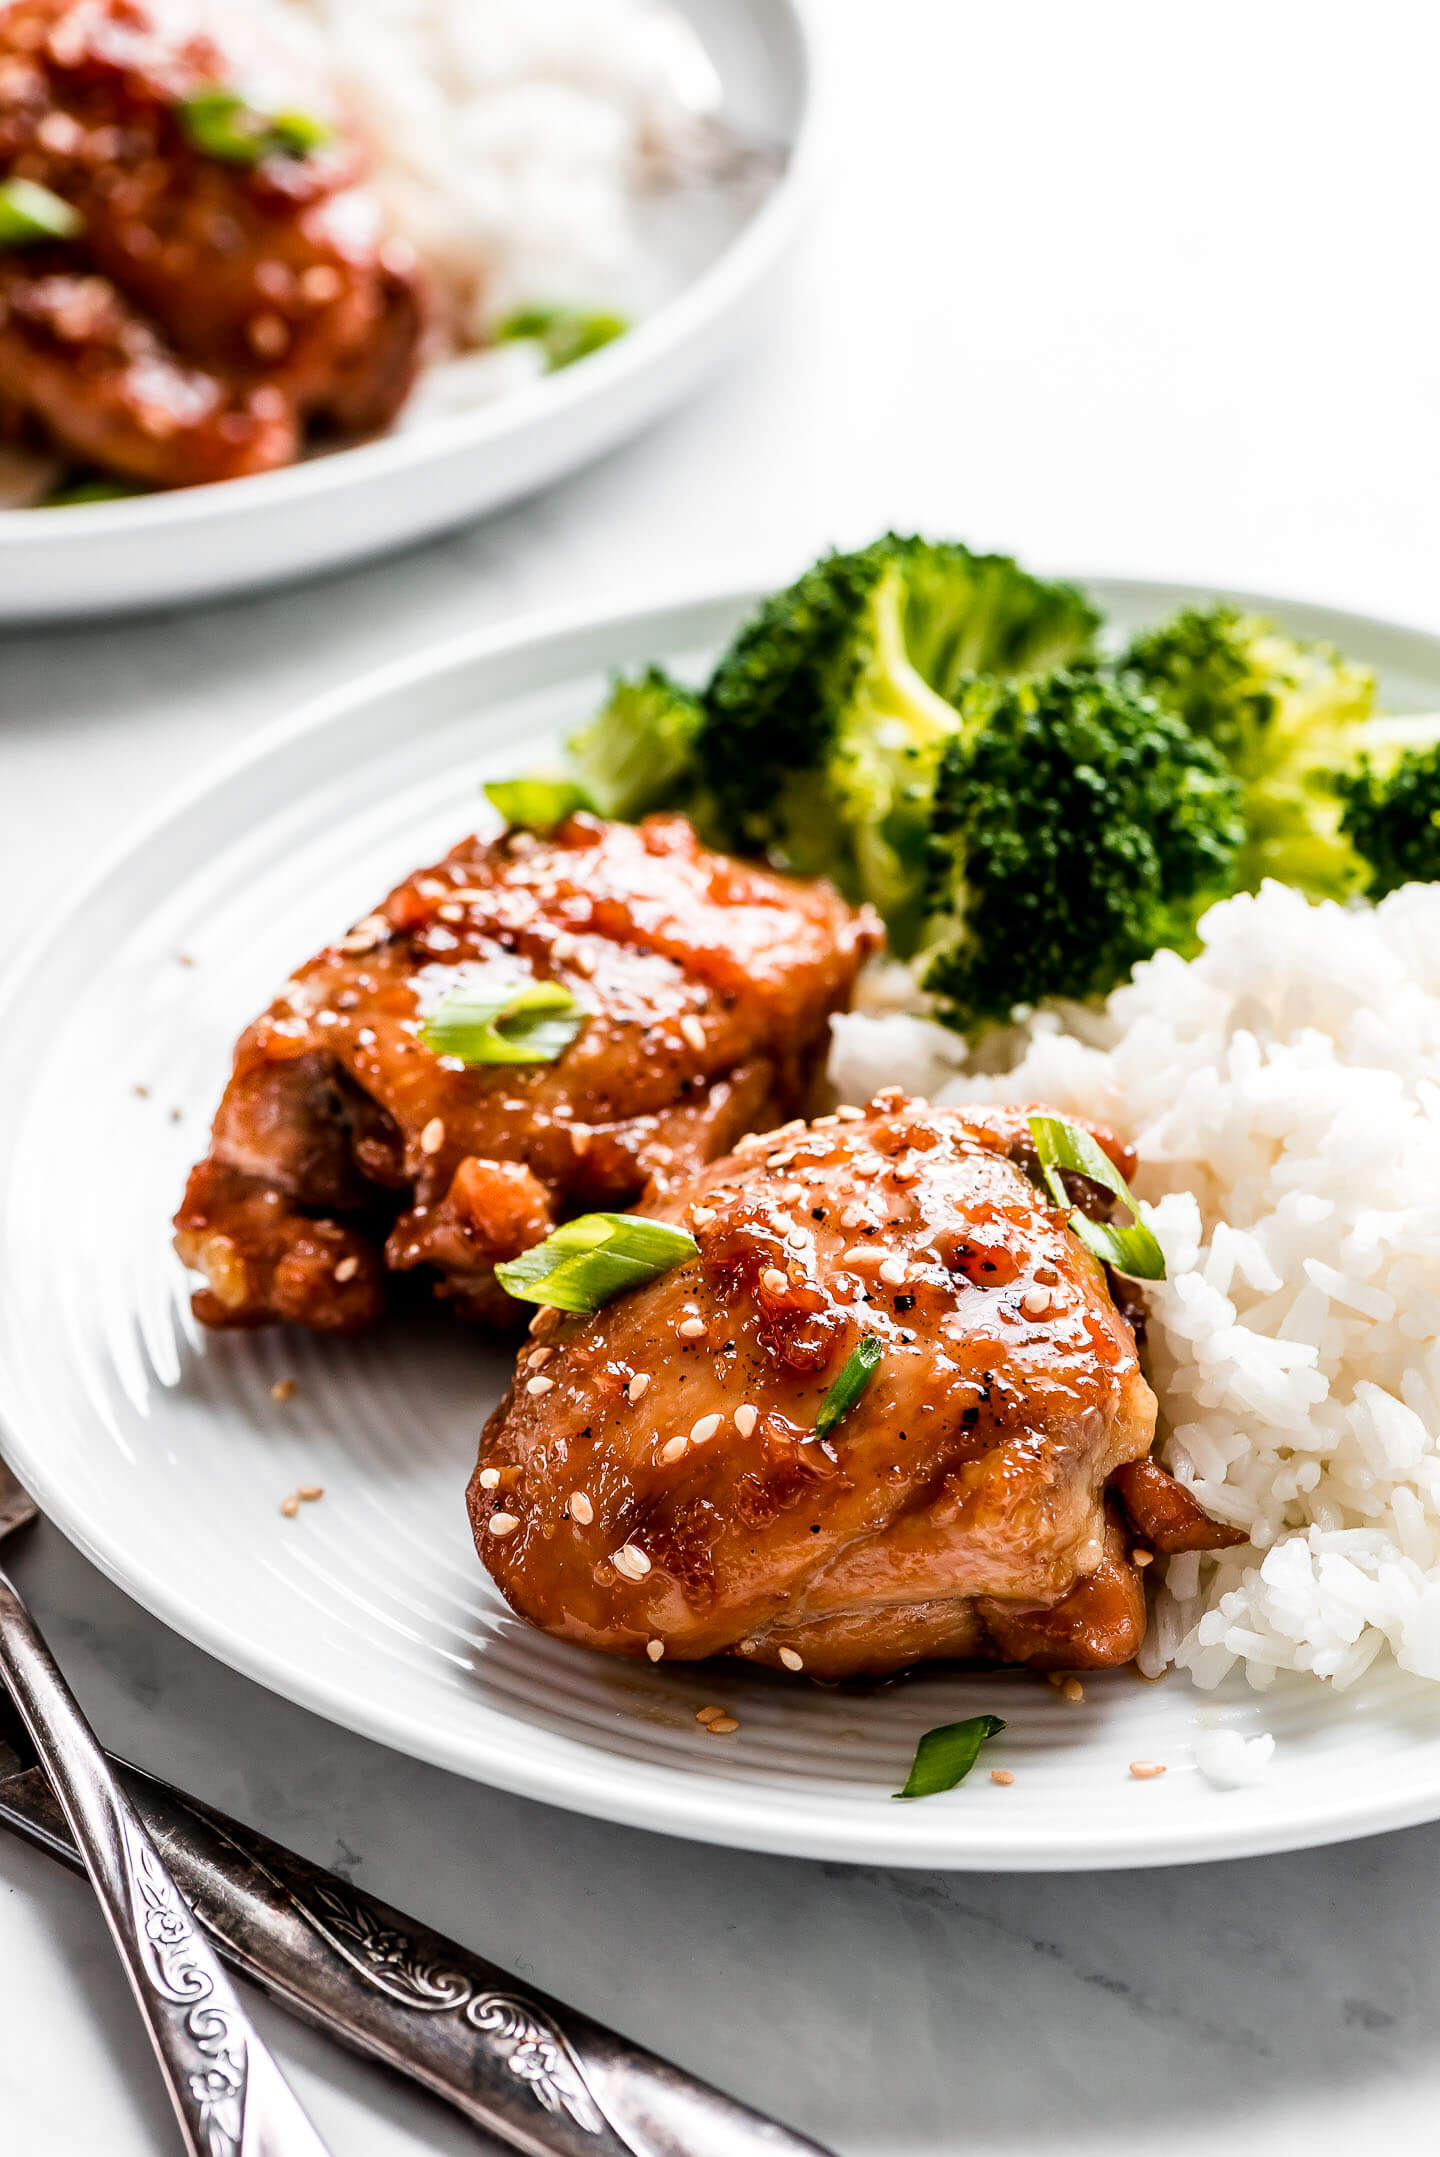 Teriyaki Chicken Thighs garnished with green onions on a white plate with white rice and broccoli.